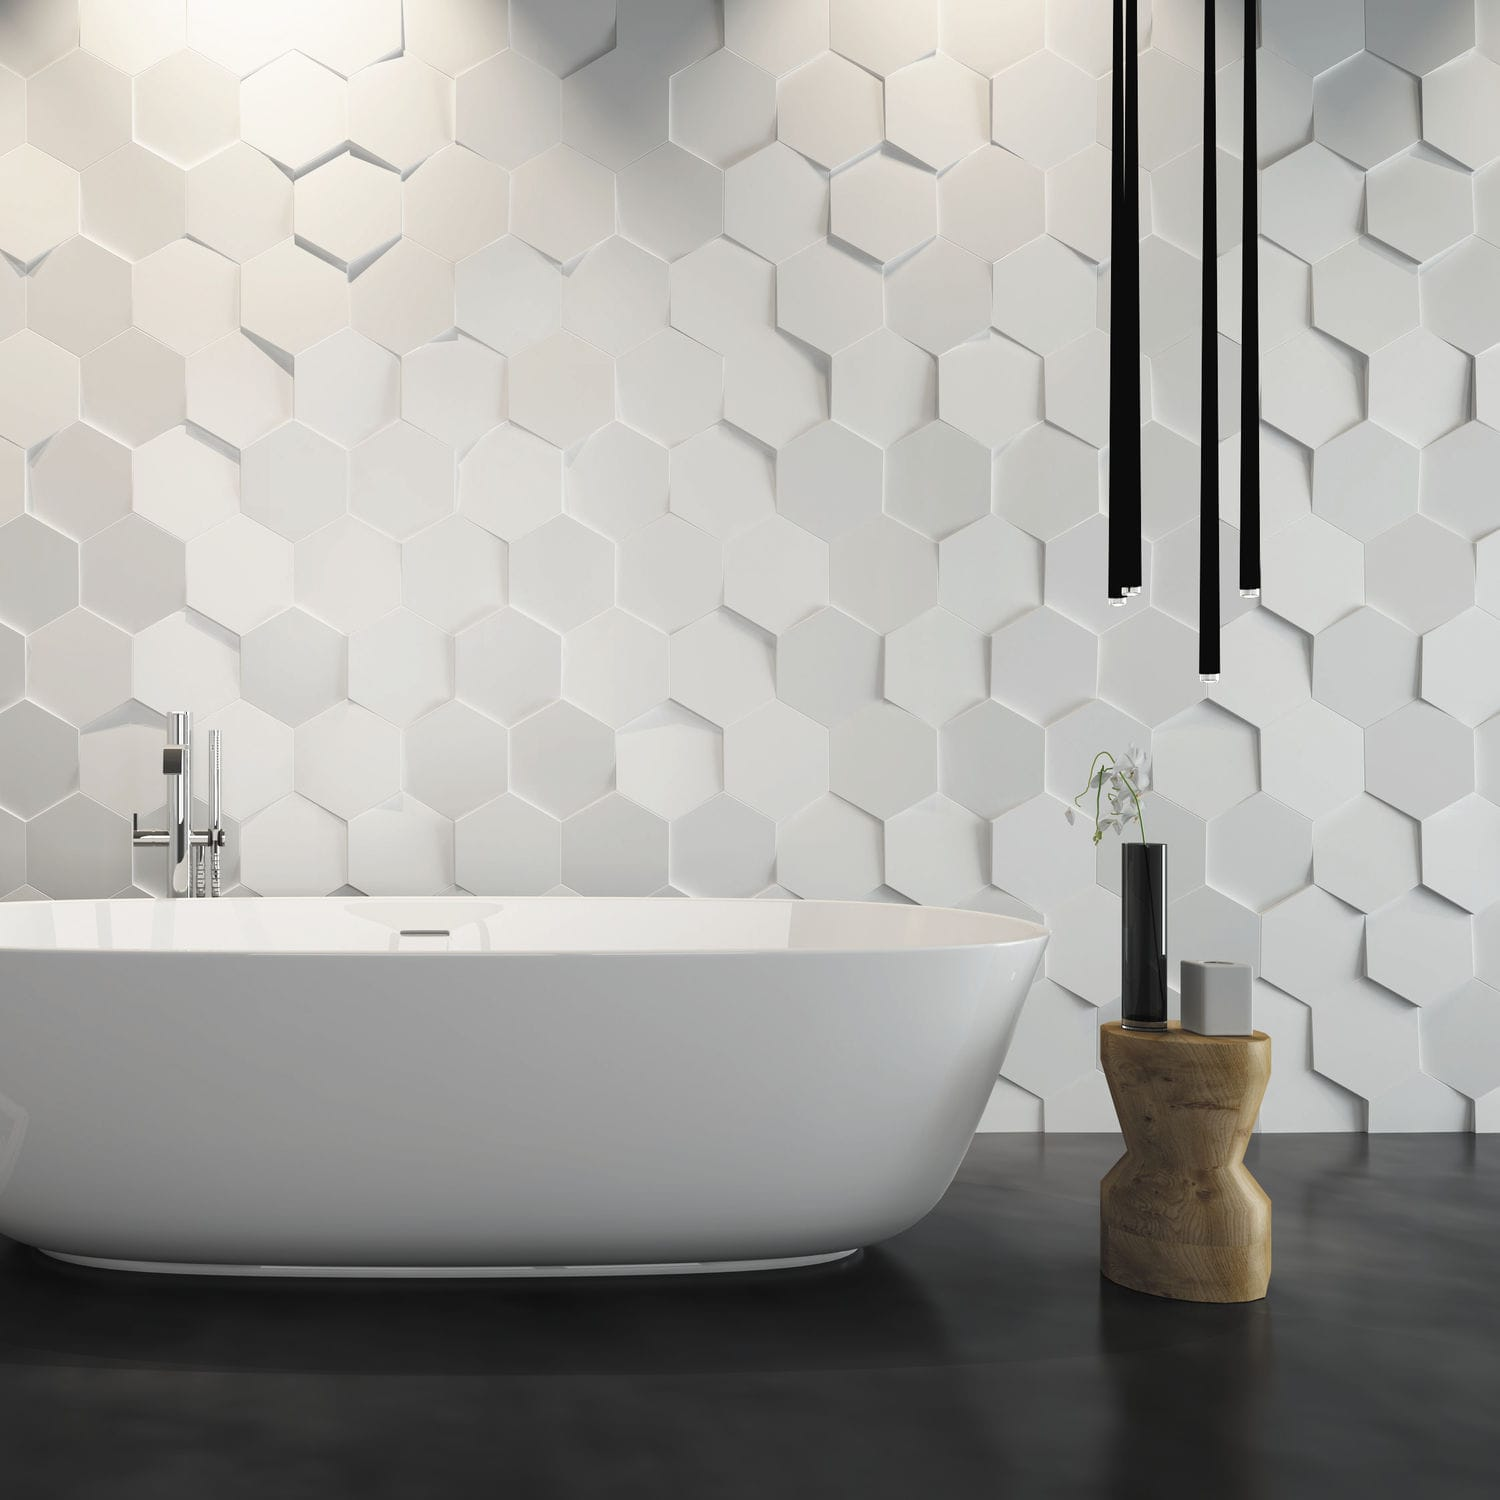 Superb Bathroom Tile / Wall / Ceramic / Textured HEXA WOW Design EU ... Part 2